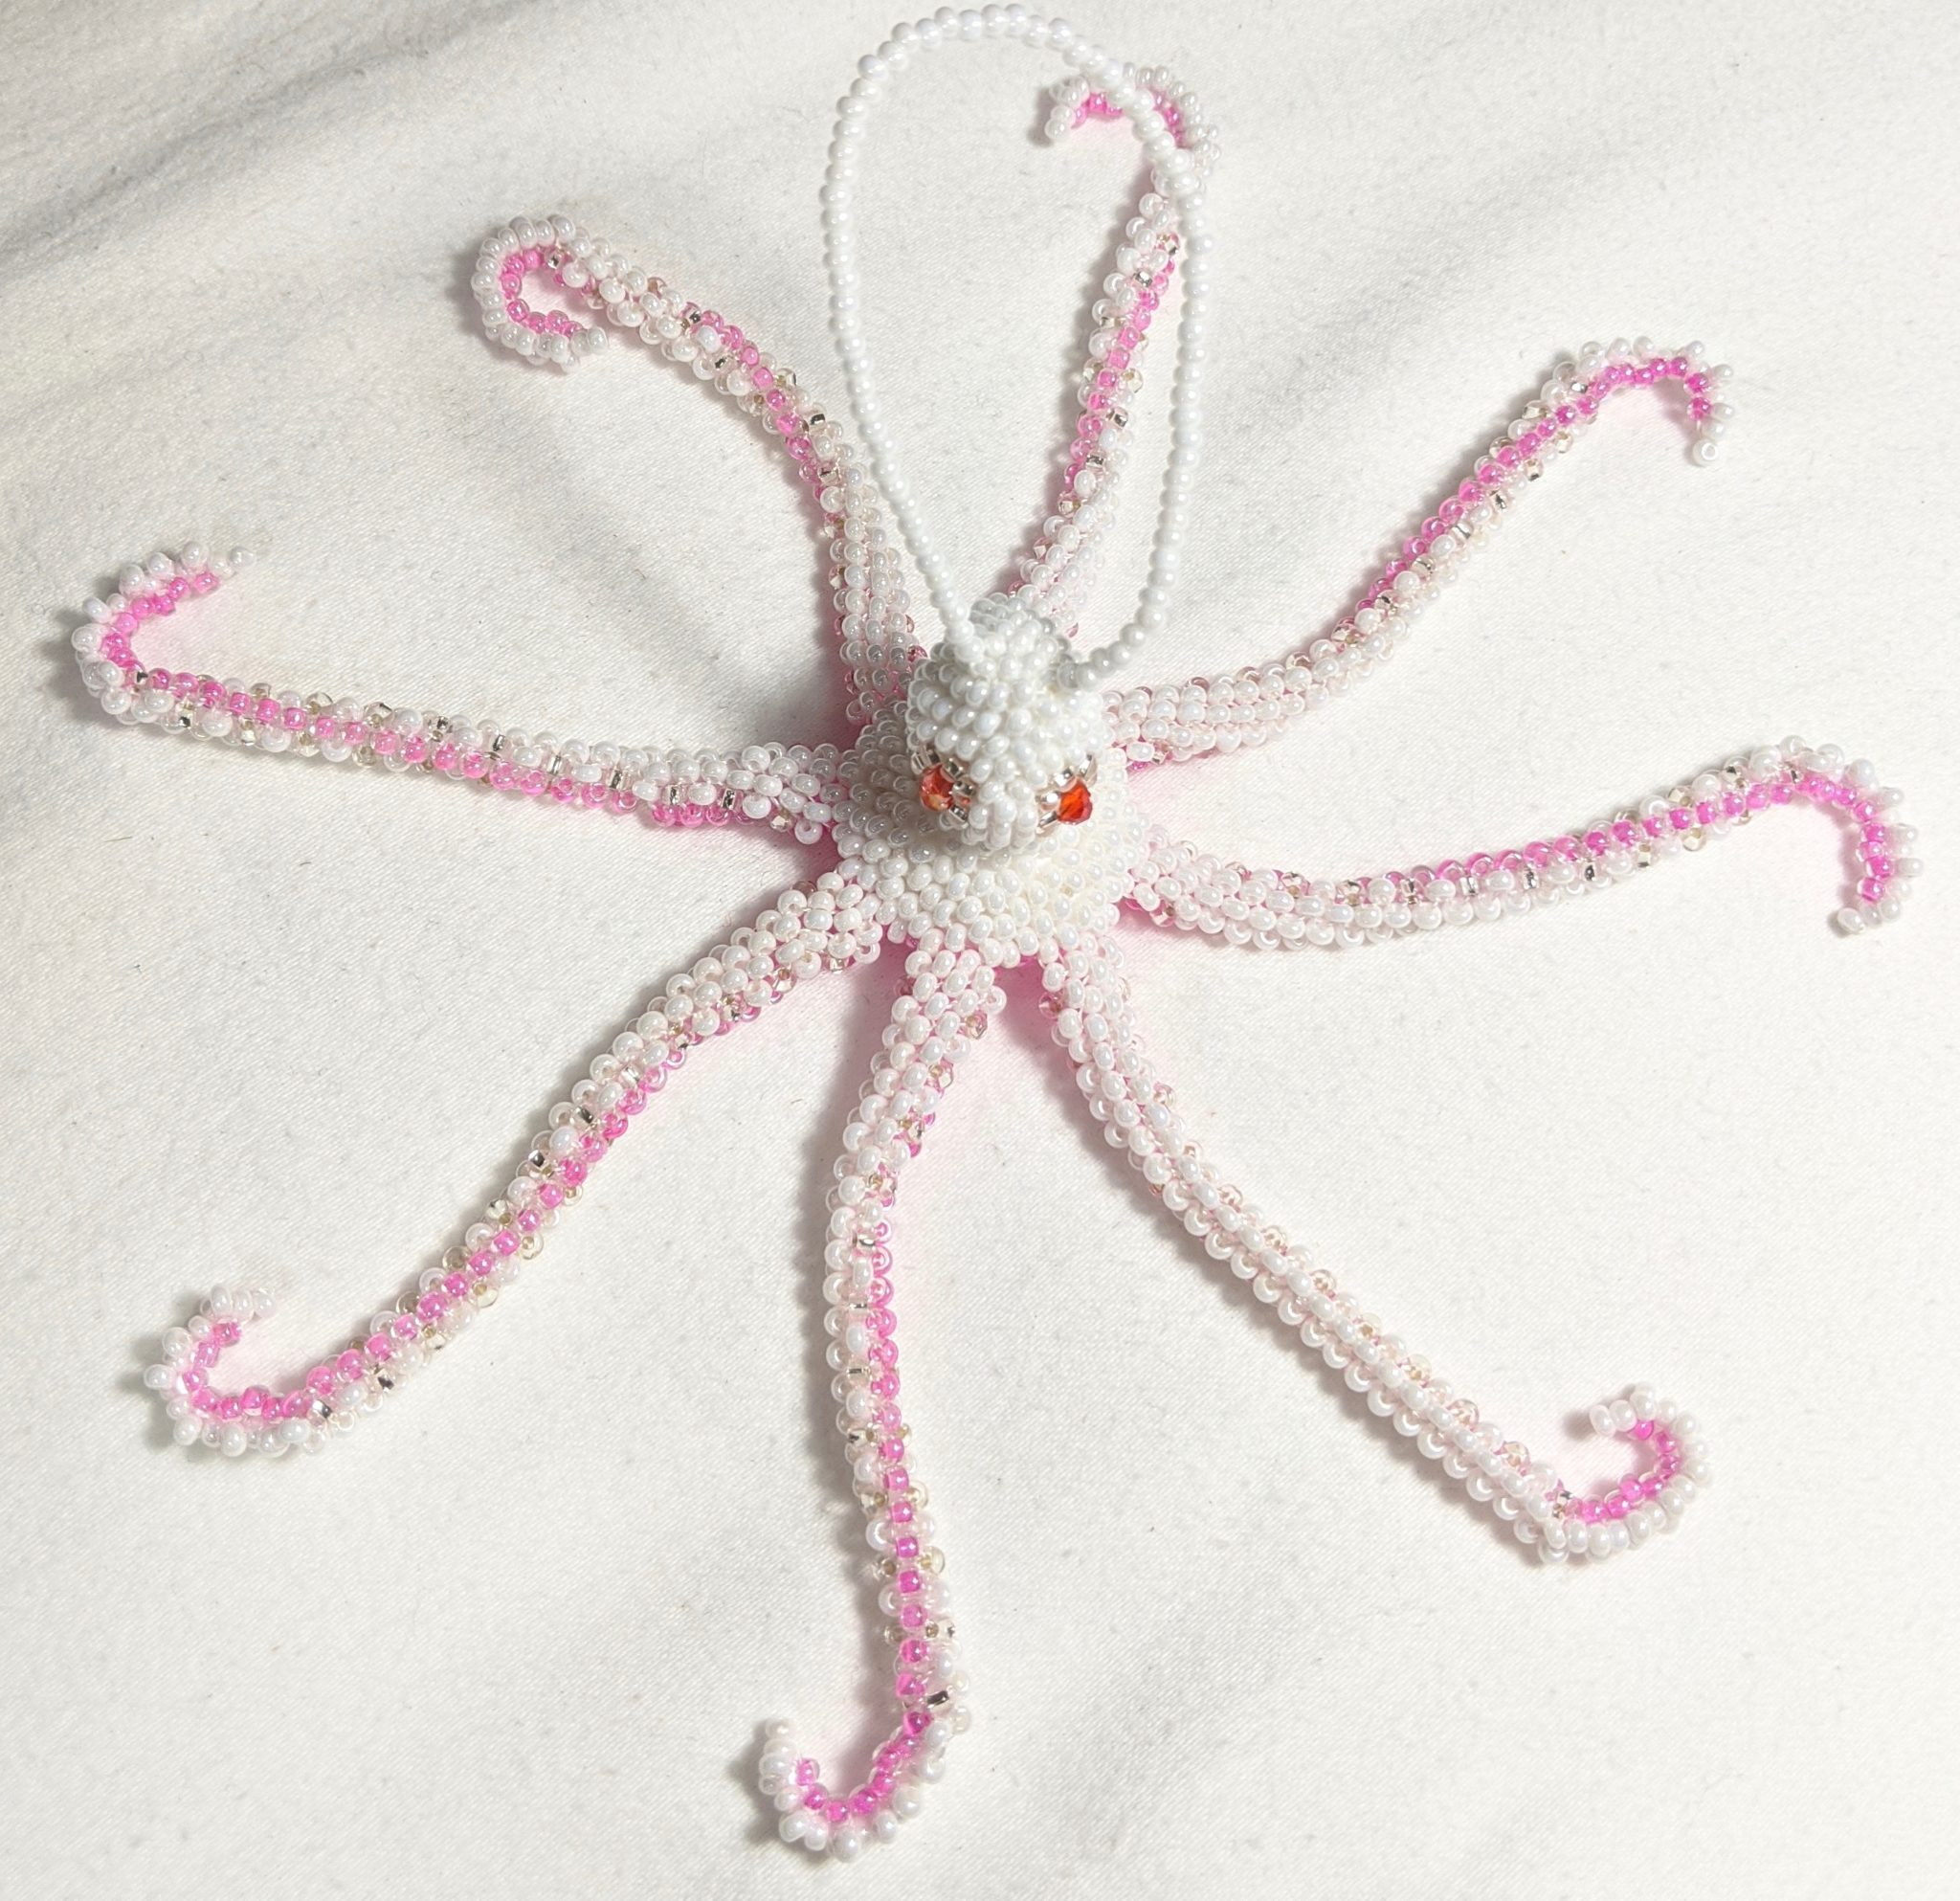 Octopus Beaded Ornament - Pink and Pearl White